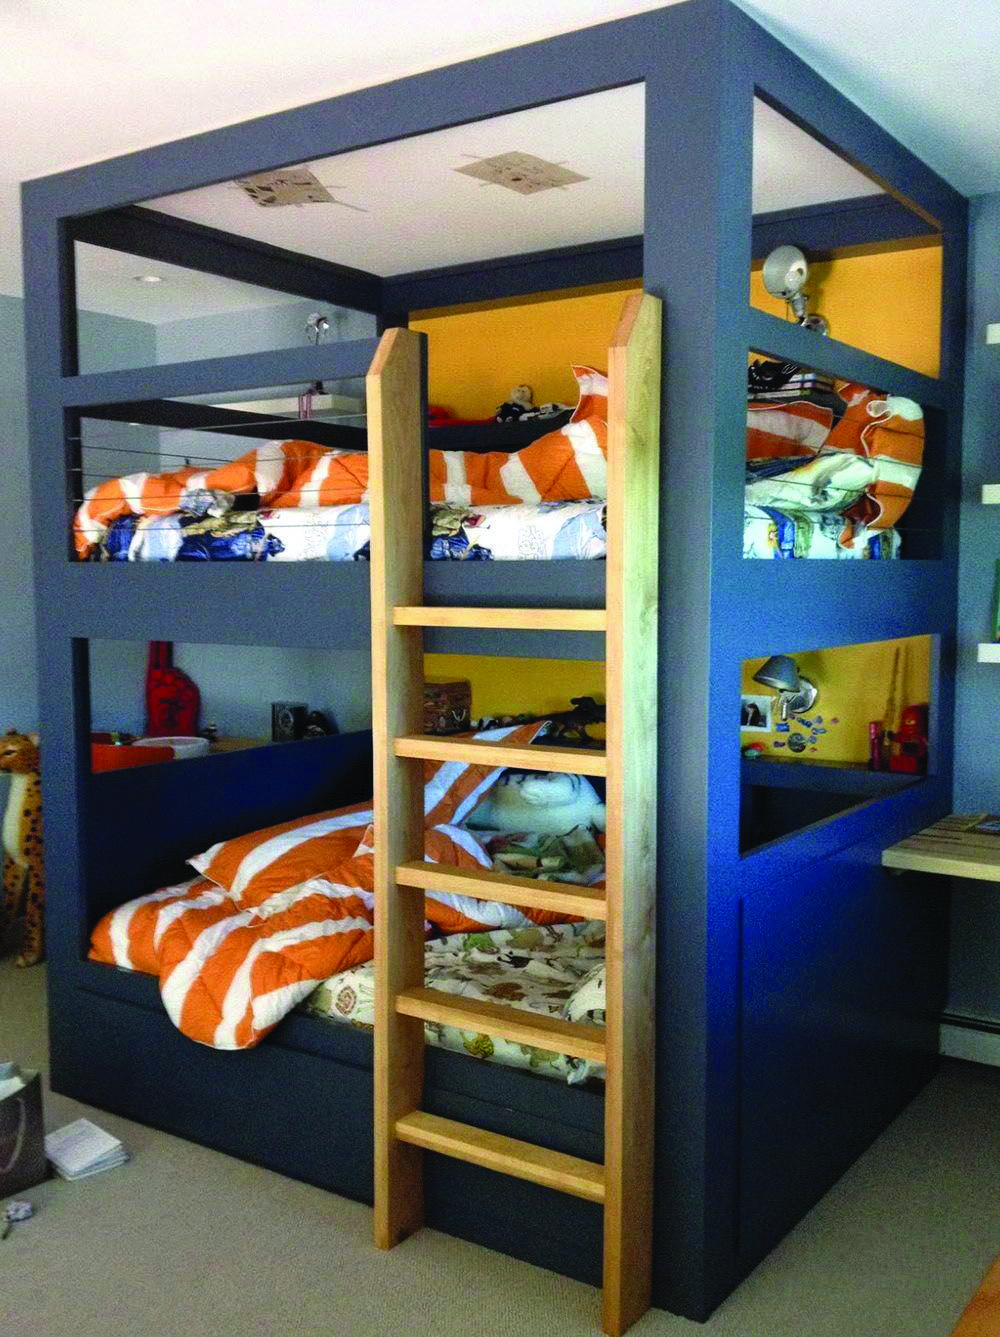 Real Home Inspiration Ikea Bunk Beds Hyderabad Only On This Page